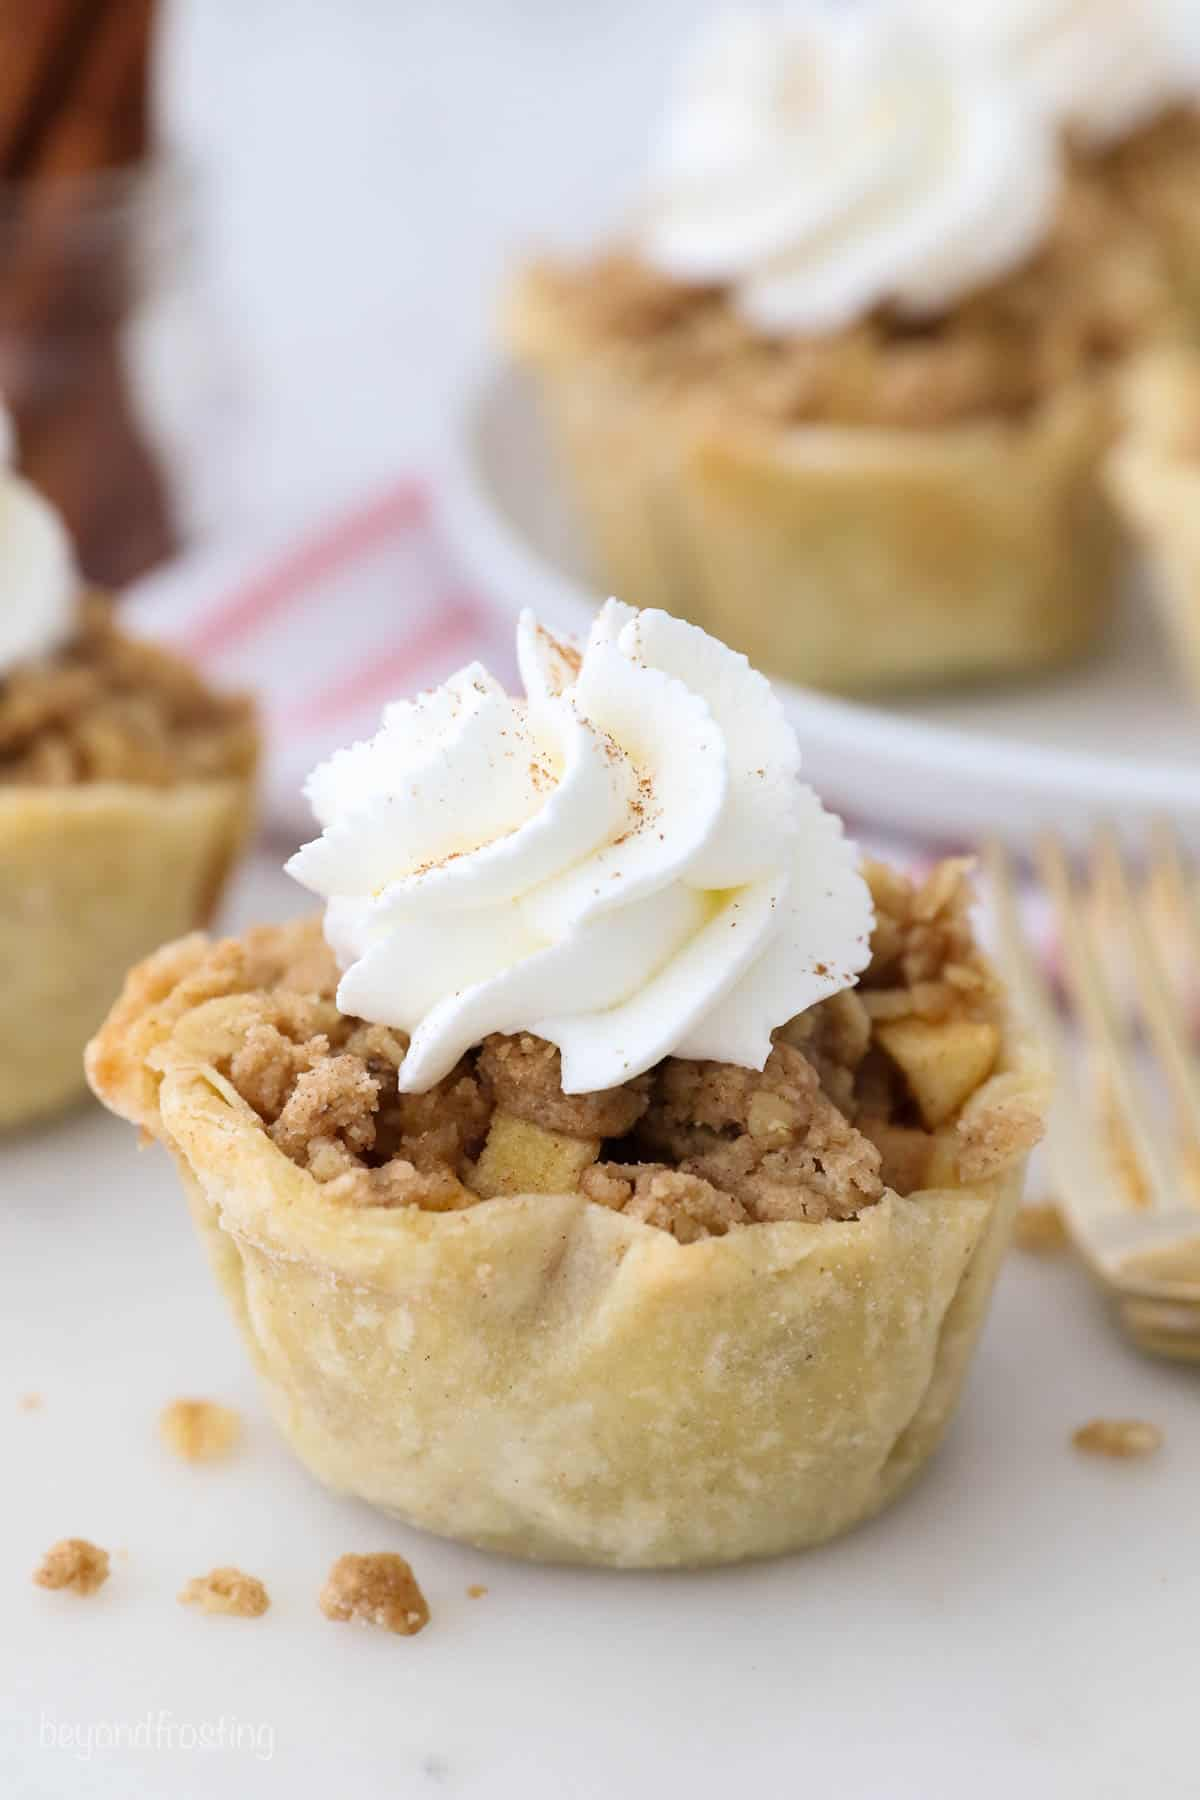 A close up of a small apple pie with whipped cream topping